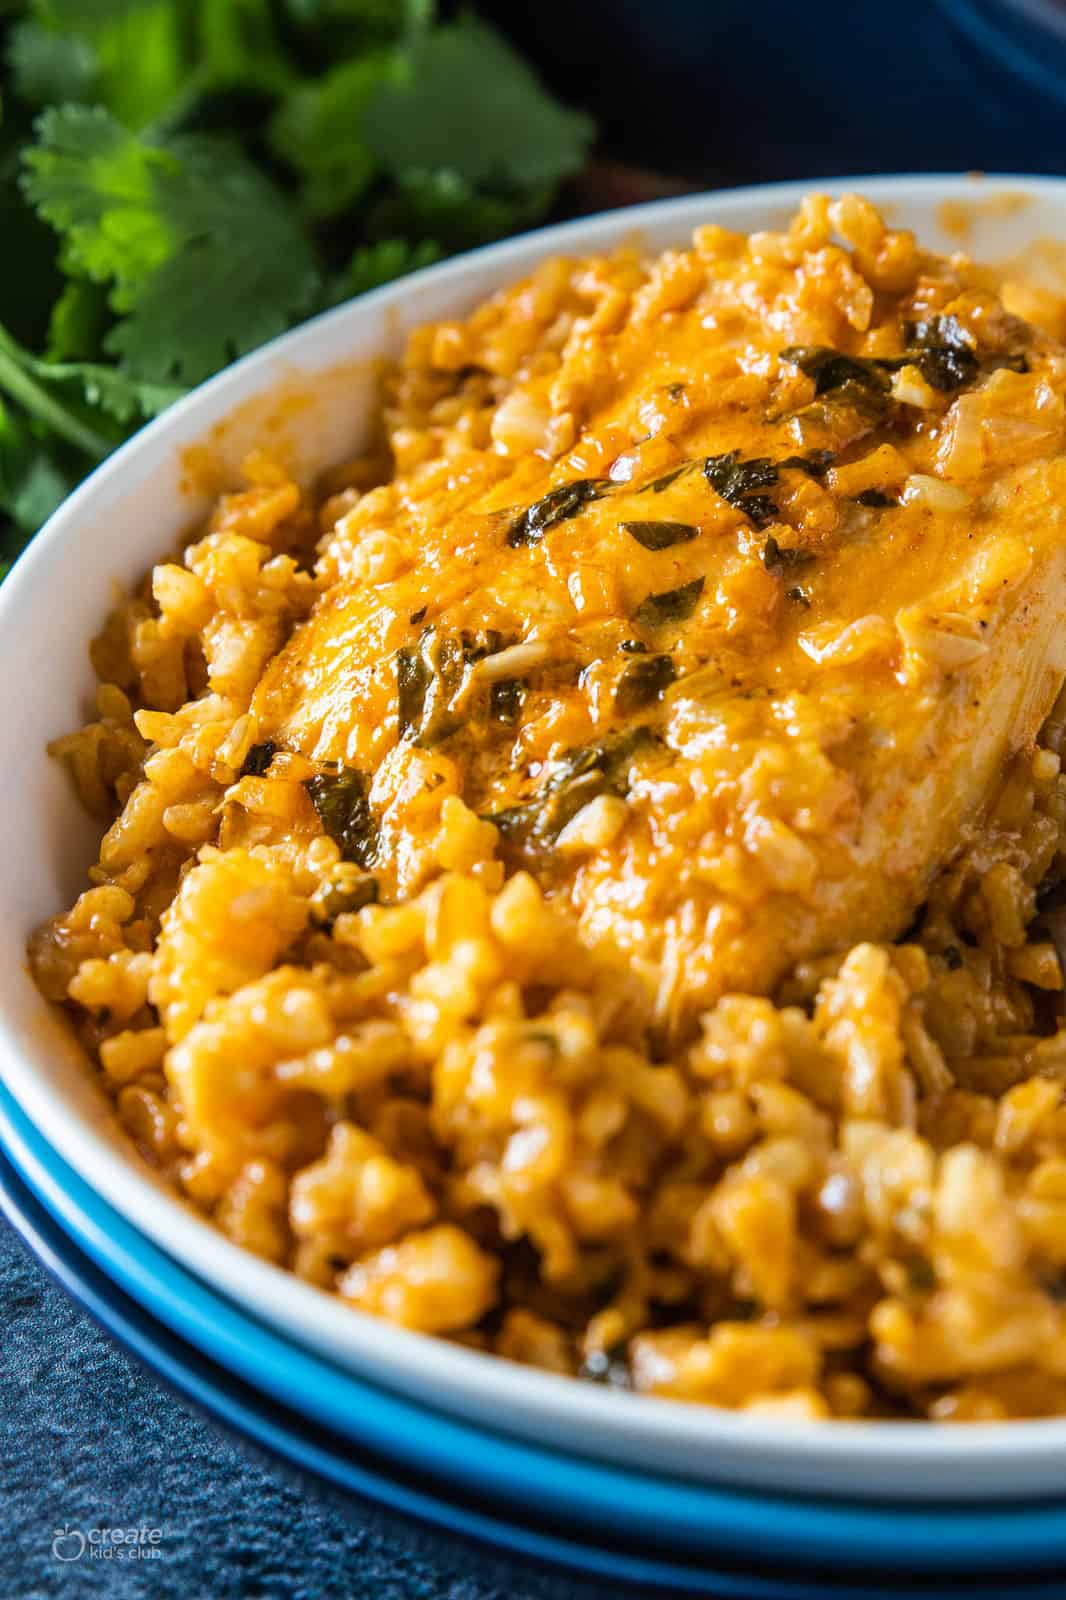 baked chicken and brown rice in a dish